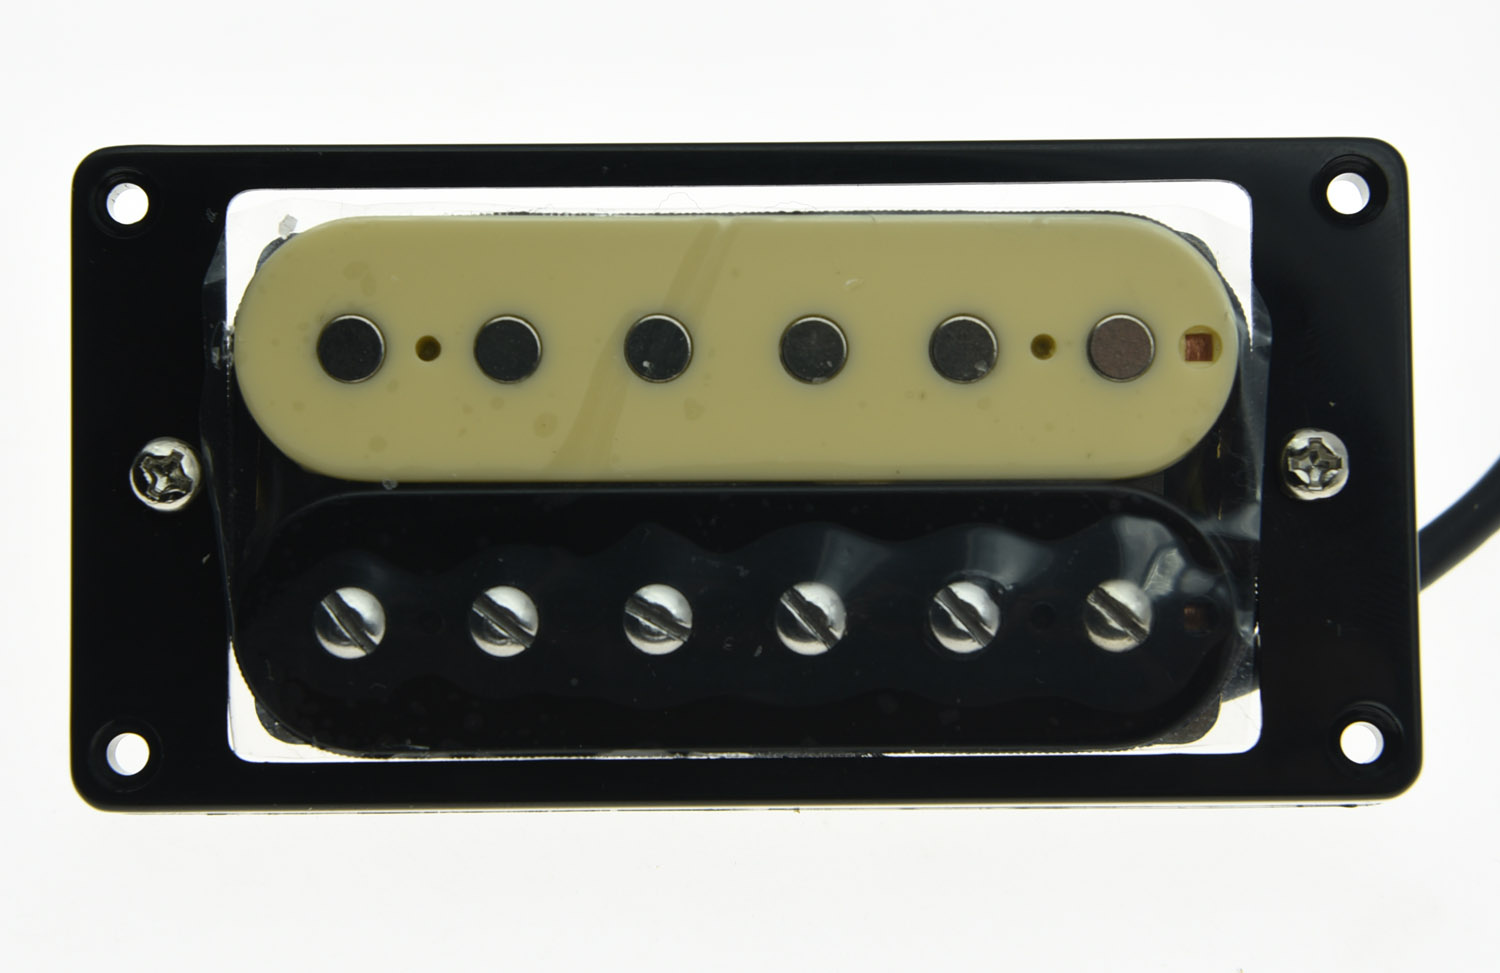 KAISH Alnico V Guitar Humbucker Bridge Pickup 50's Vintage Sound Pickups Zebra Style belcat electric guitar pickups humbucker double coil pickup guitar parts accessories bridge neck set alnico 5 gold